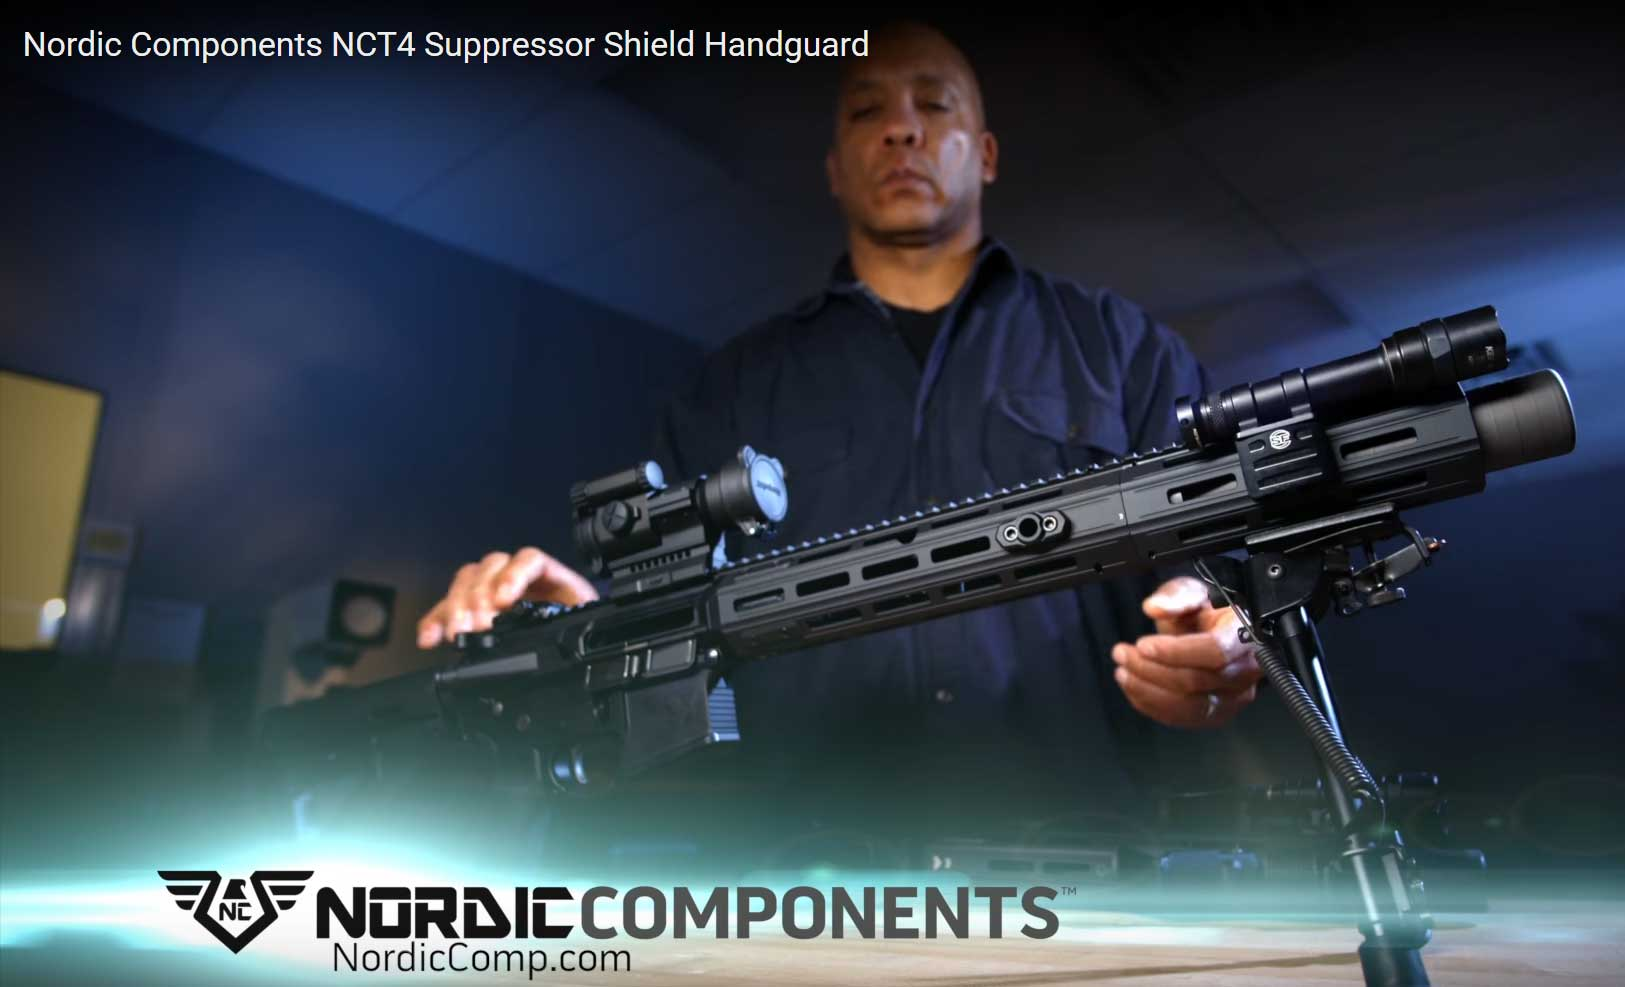 Nordic Components NCT4 Suppressor Shield Handguard